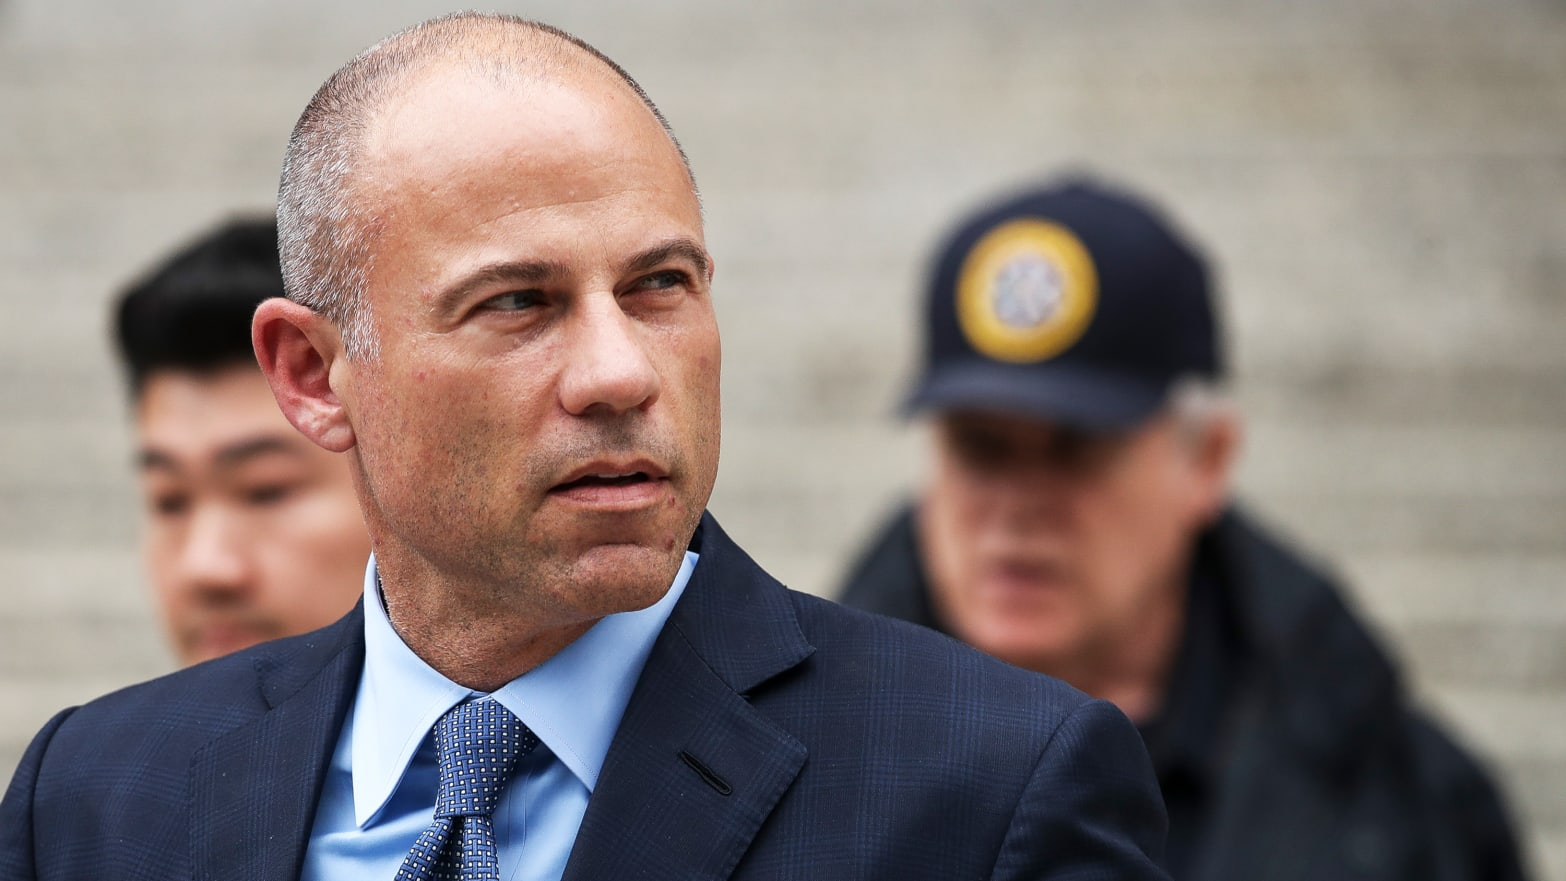 Michael Avenatti 'was caught on wiretap trying to shake Nike down for $25 MILLION'…